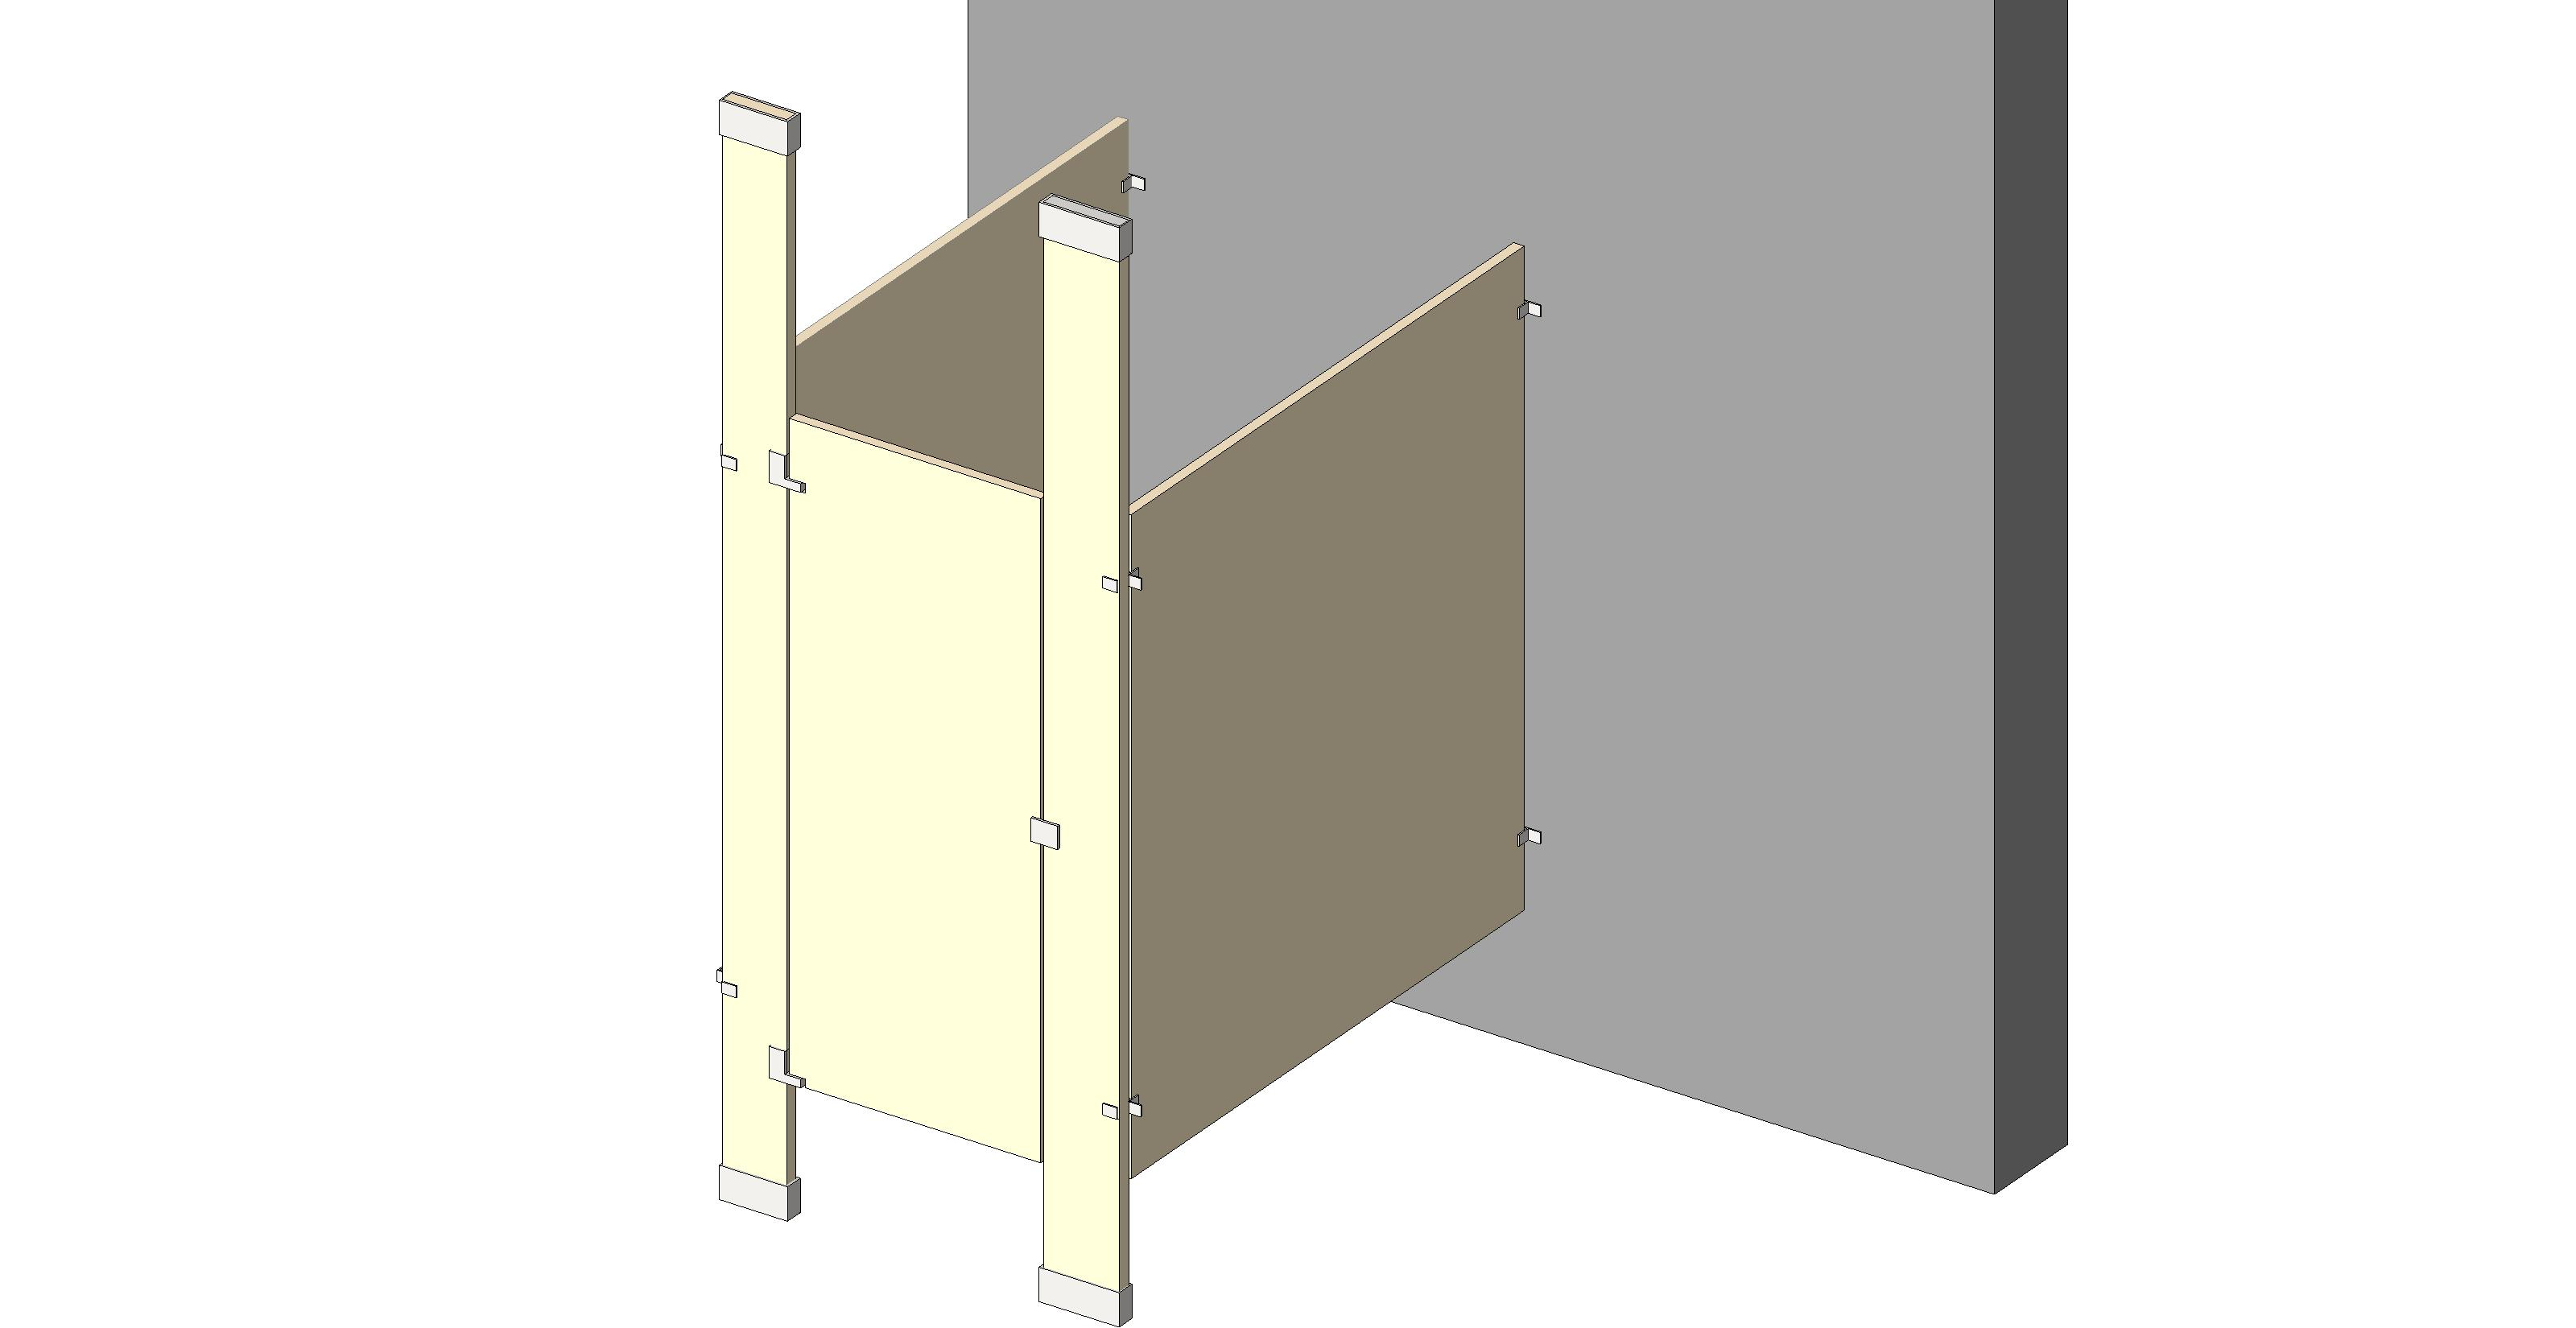 Bathroom Stall Partitions Bathroom Stalls Canada Stall - Bathroom stall manufacturers